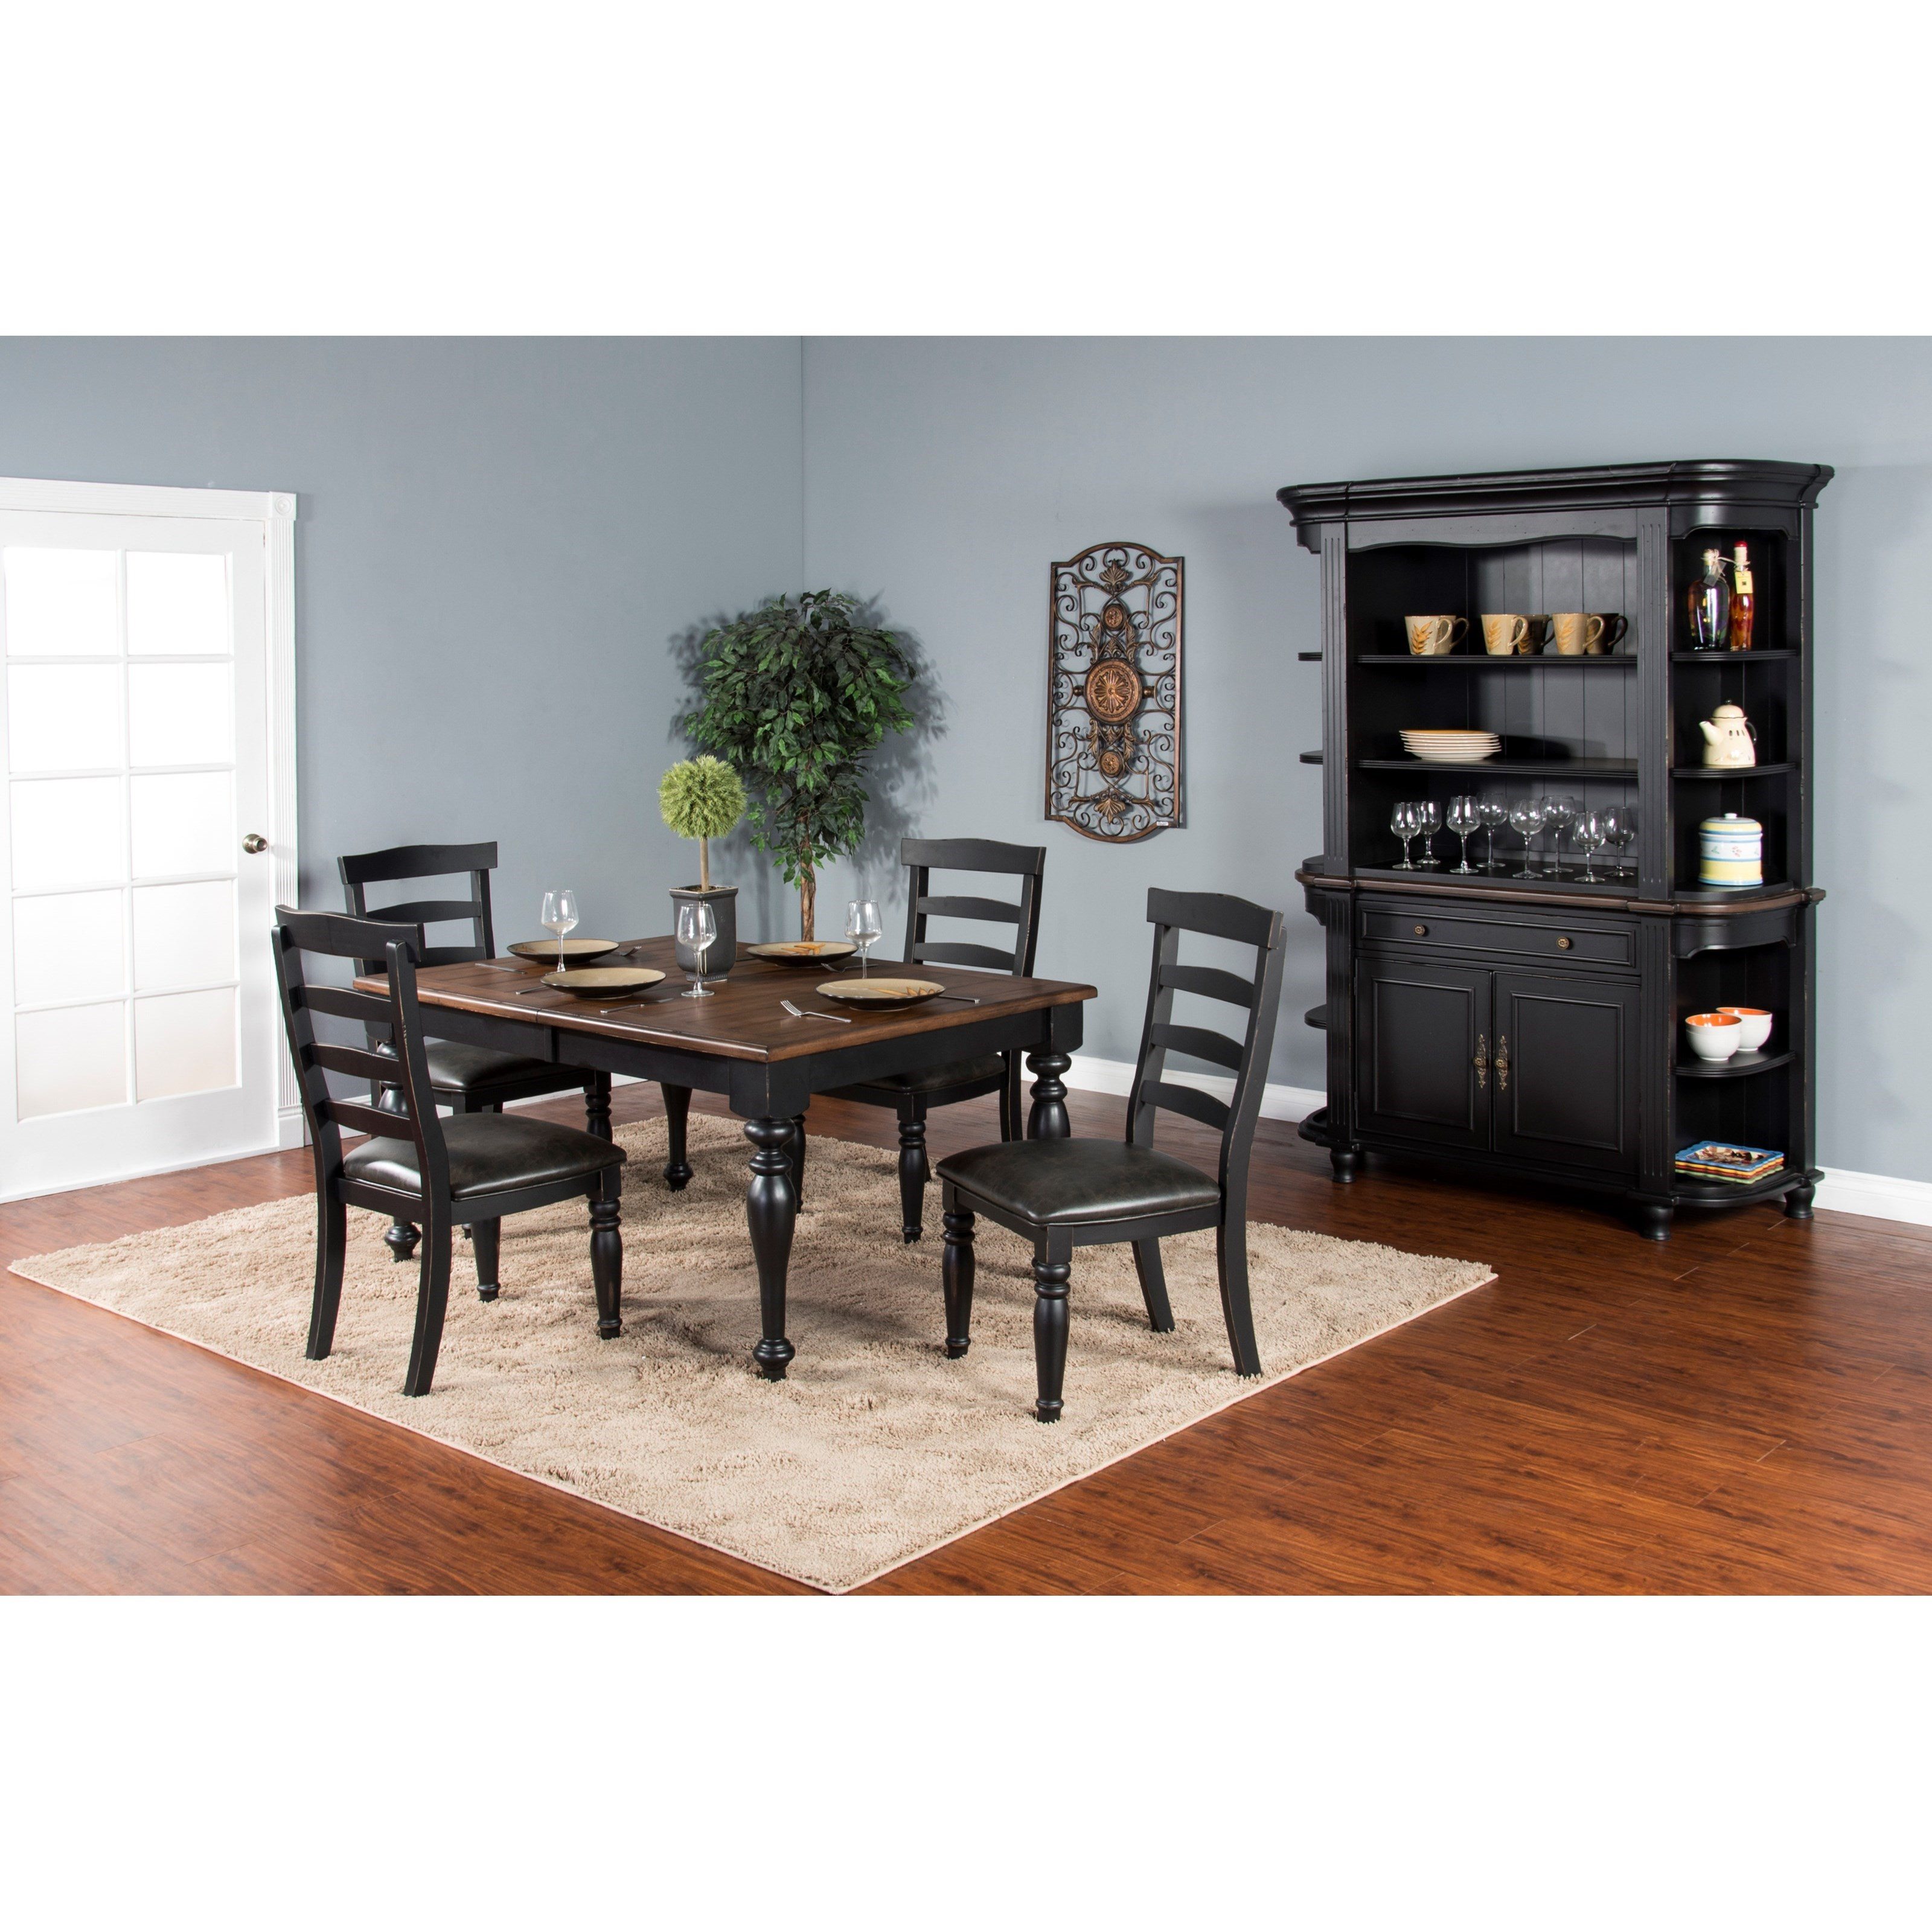 Casual Dining Room Designs: Sunny Designs Bourbon Trail Casual Dining Room Group